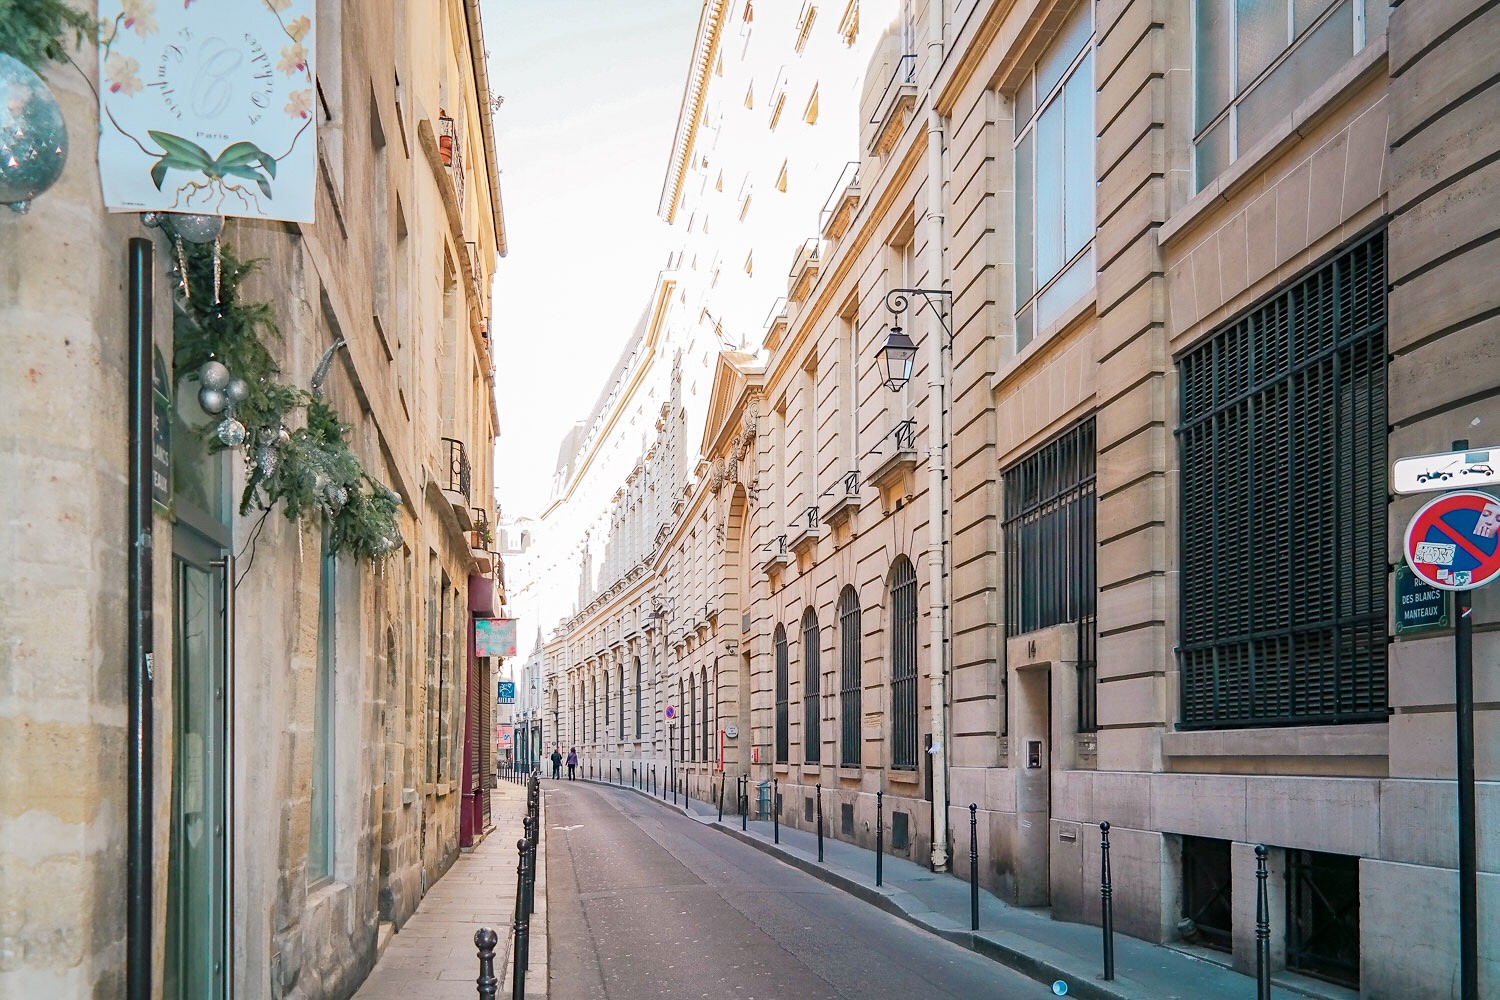 Golden hour on a street in Le Marais